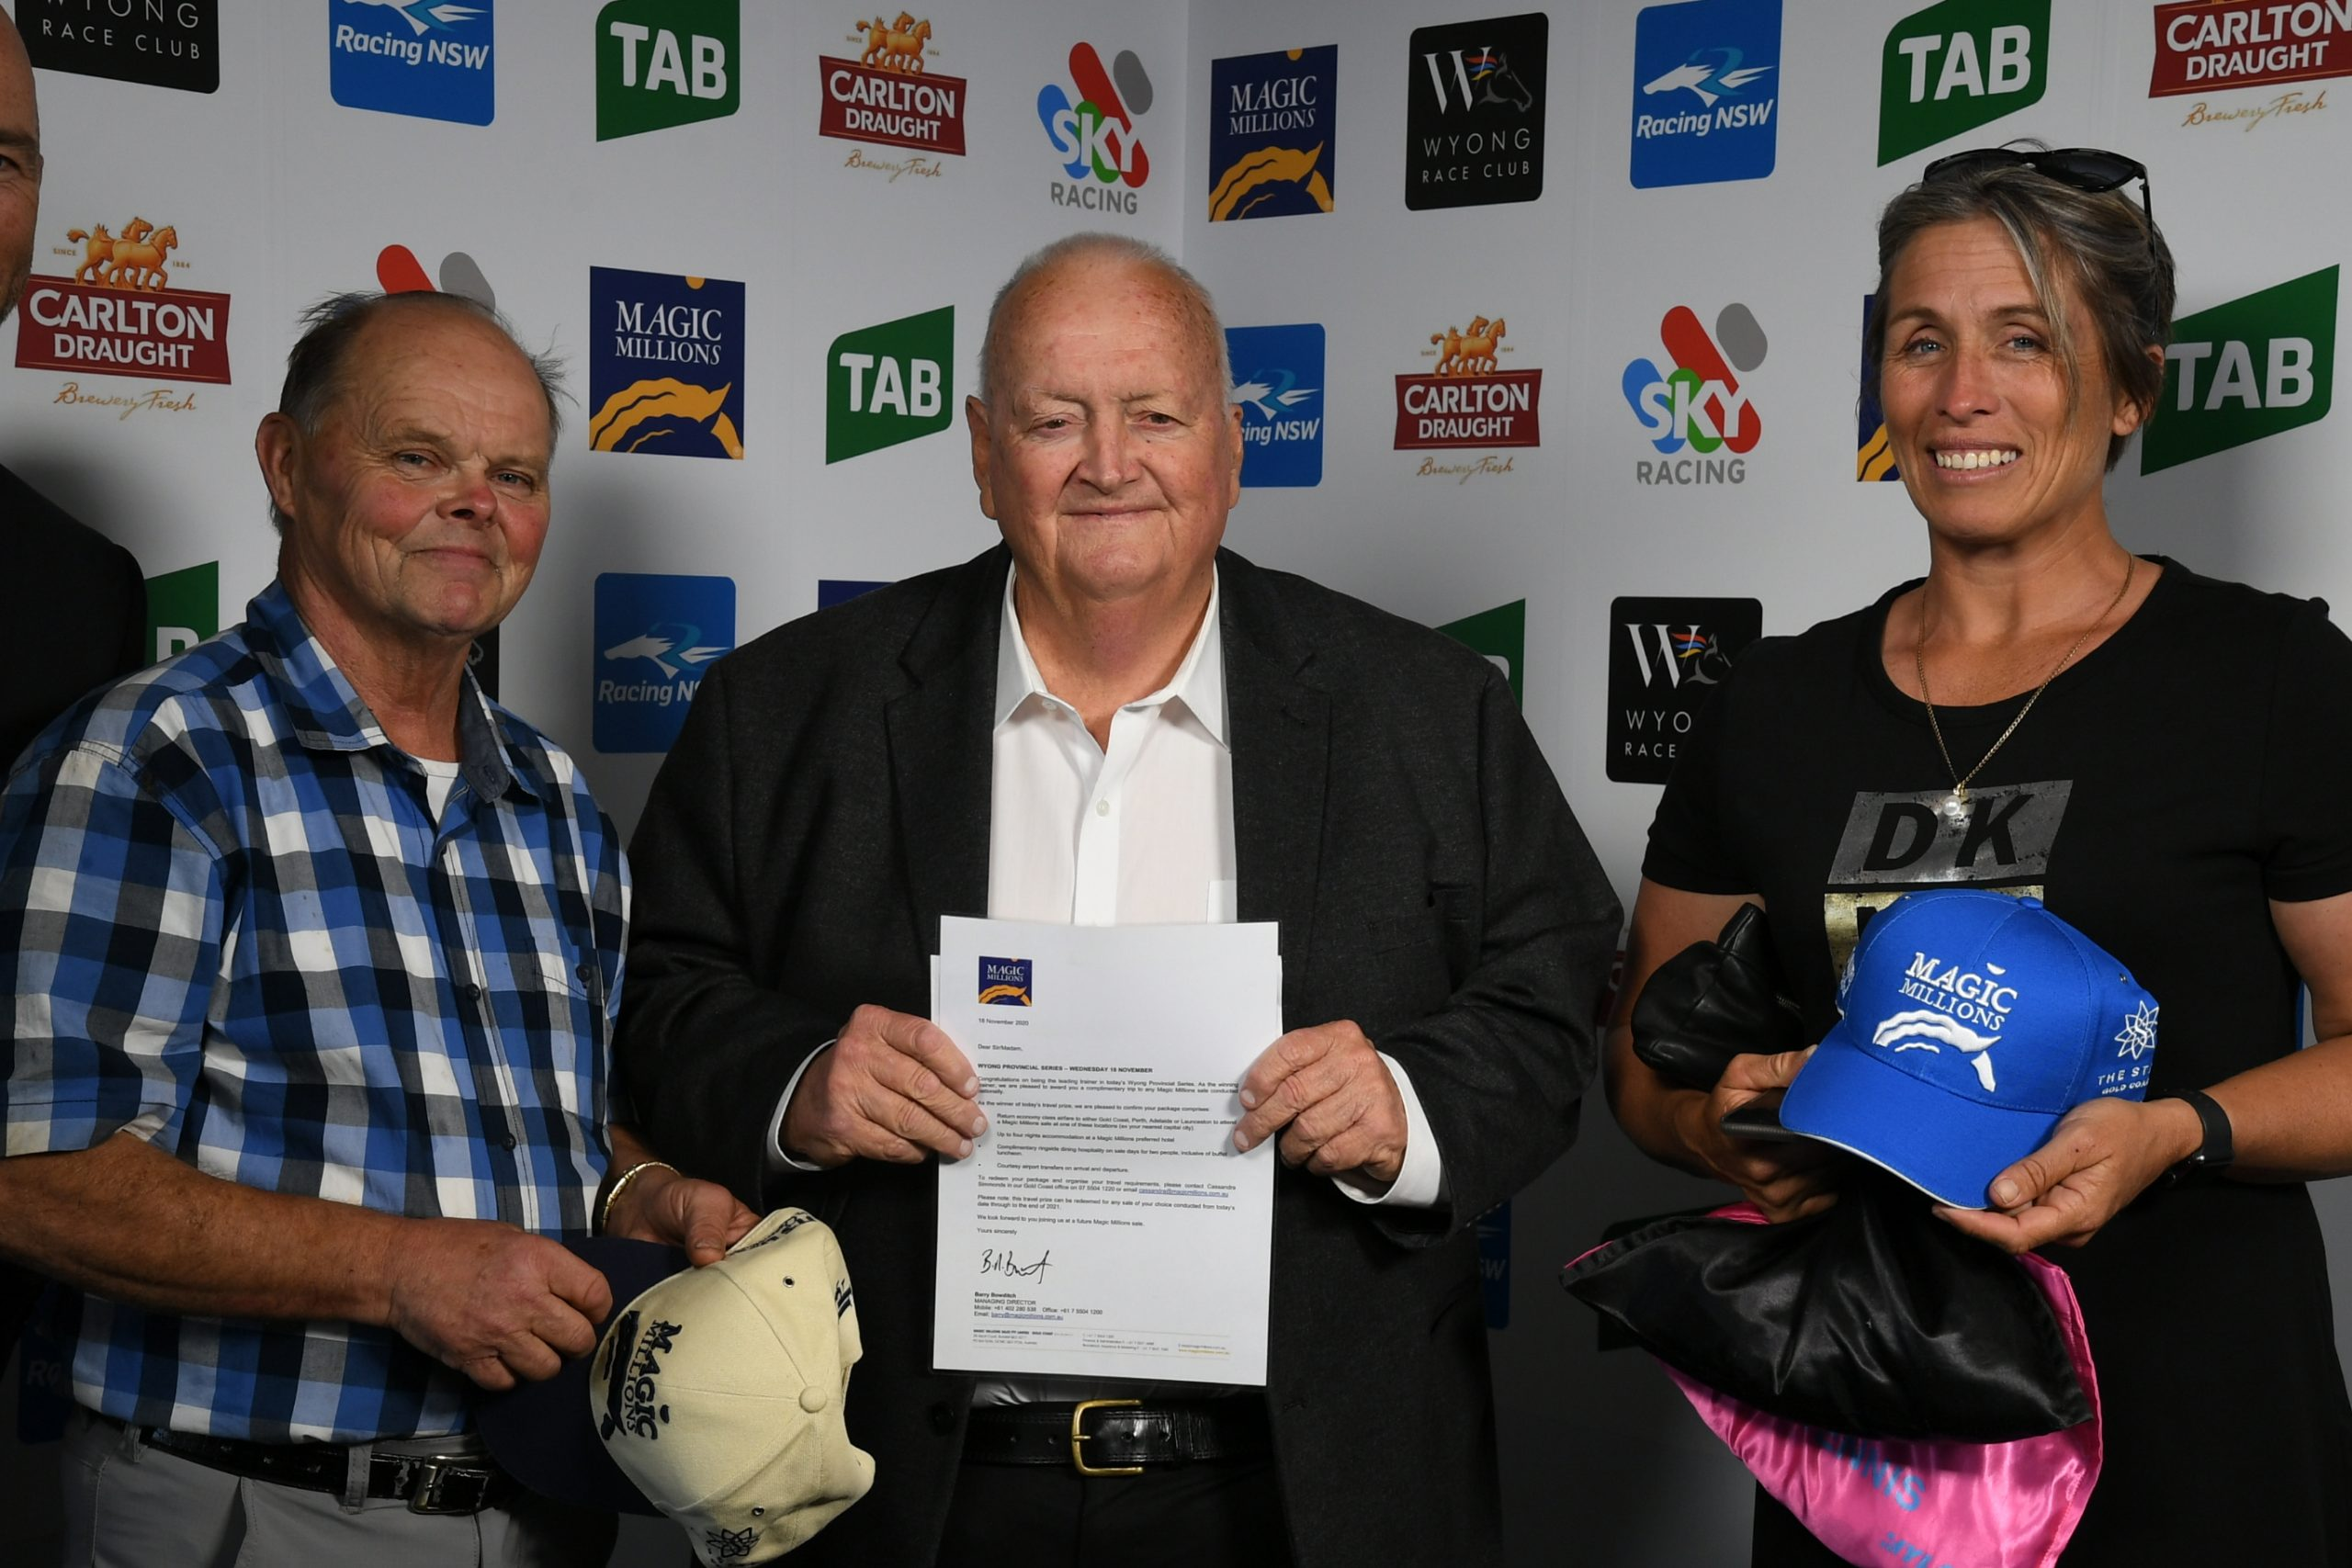 WYONG DUO TAKE OUT MAGIC MILLIONS PRIZE 3